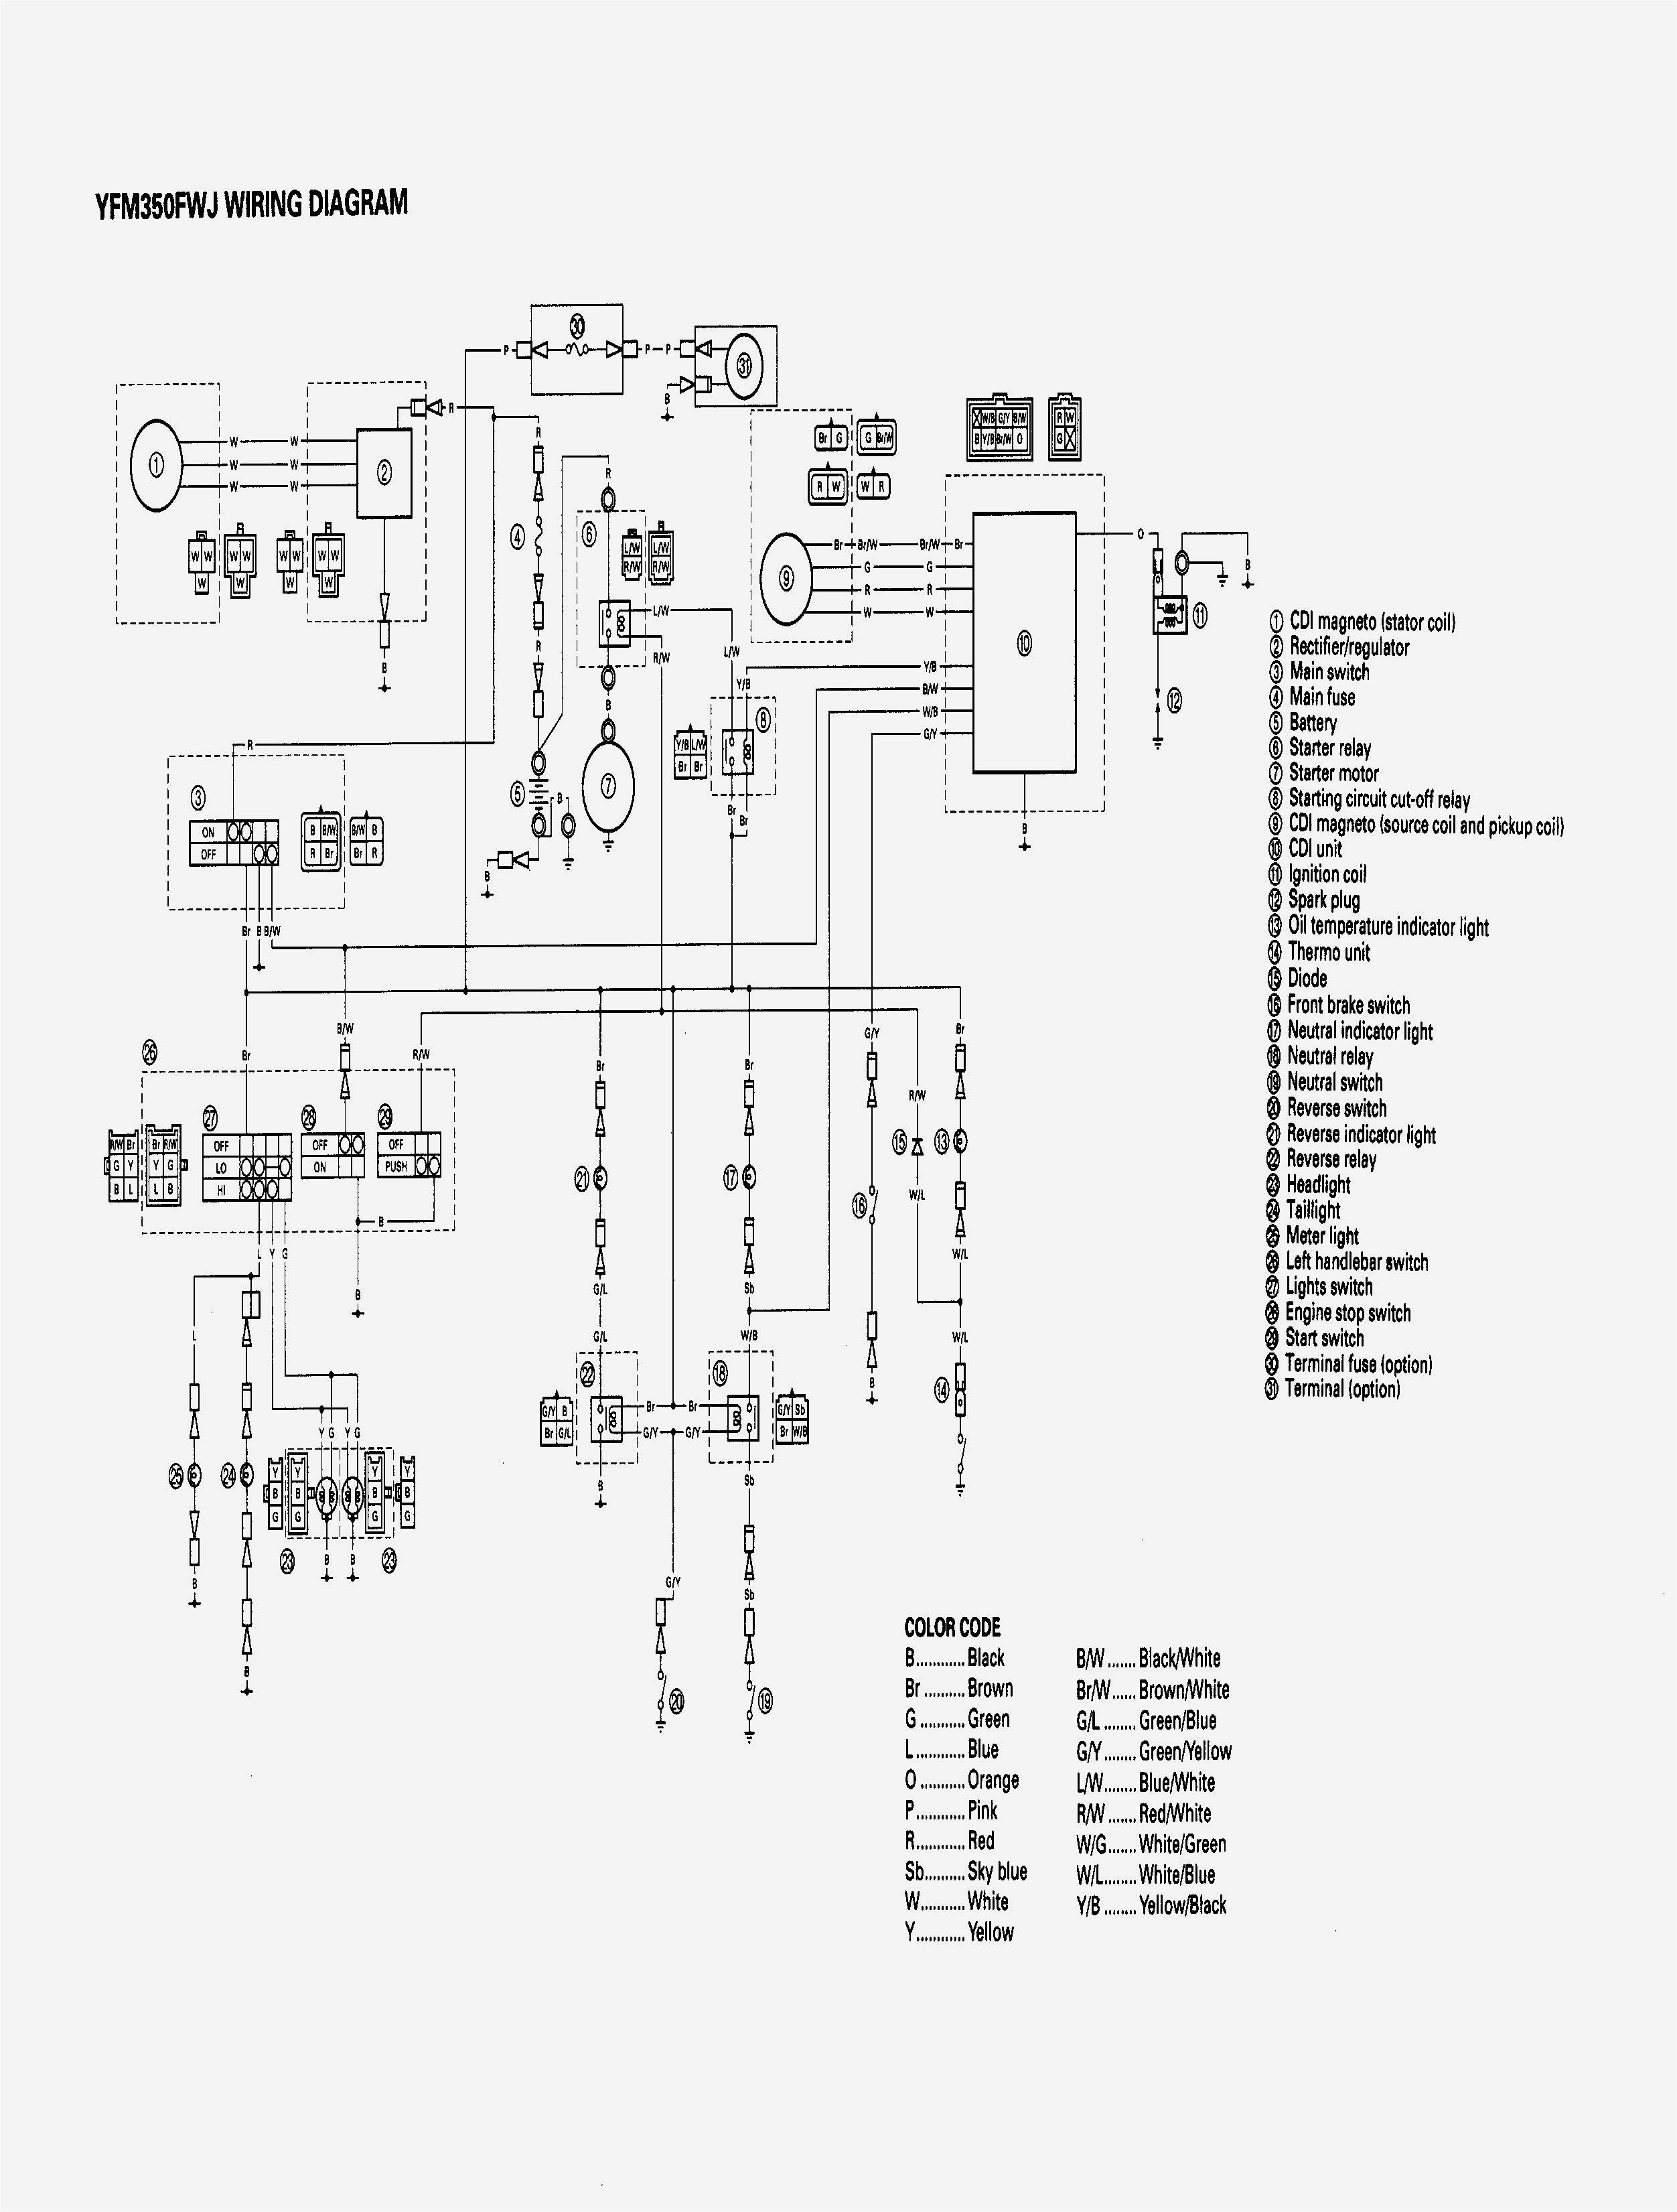 1997 Dodge Ram 1500 Headlight Switch Wiring Diagram